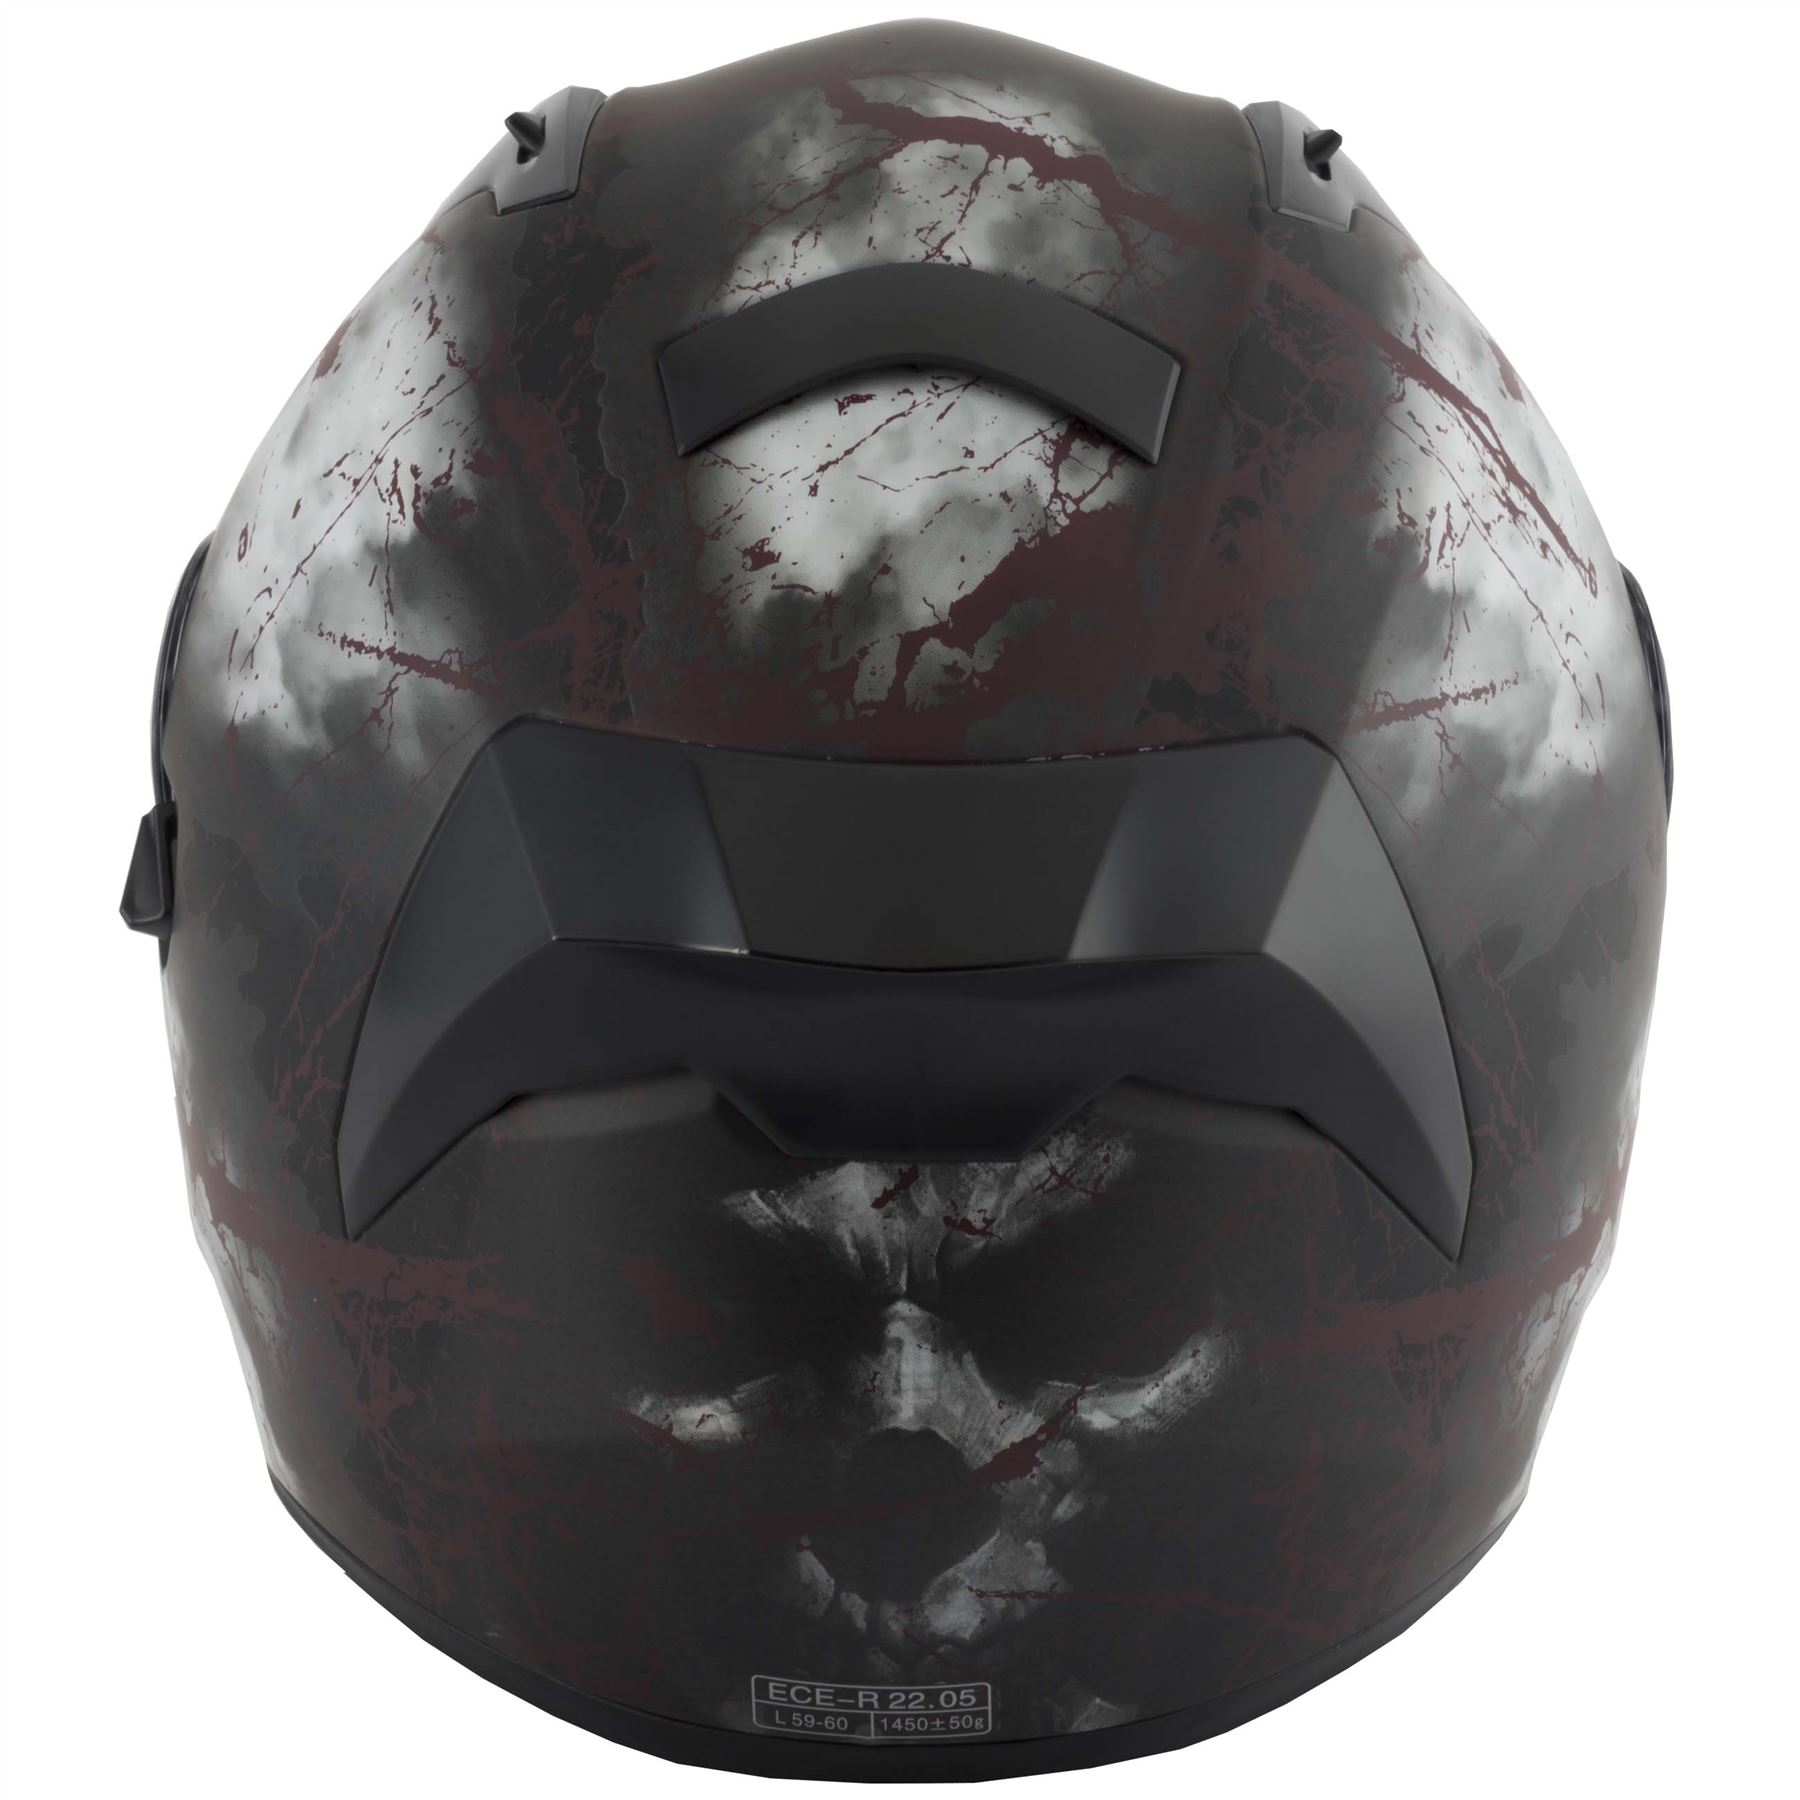 thumbnail 20 - VCAN V128 Dragon Skull Monster Motorcycle Bike Helmet With Drop Down Sun Visor